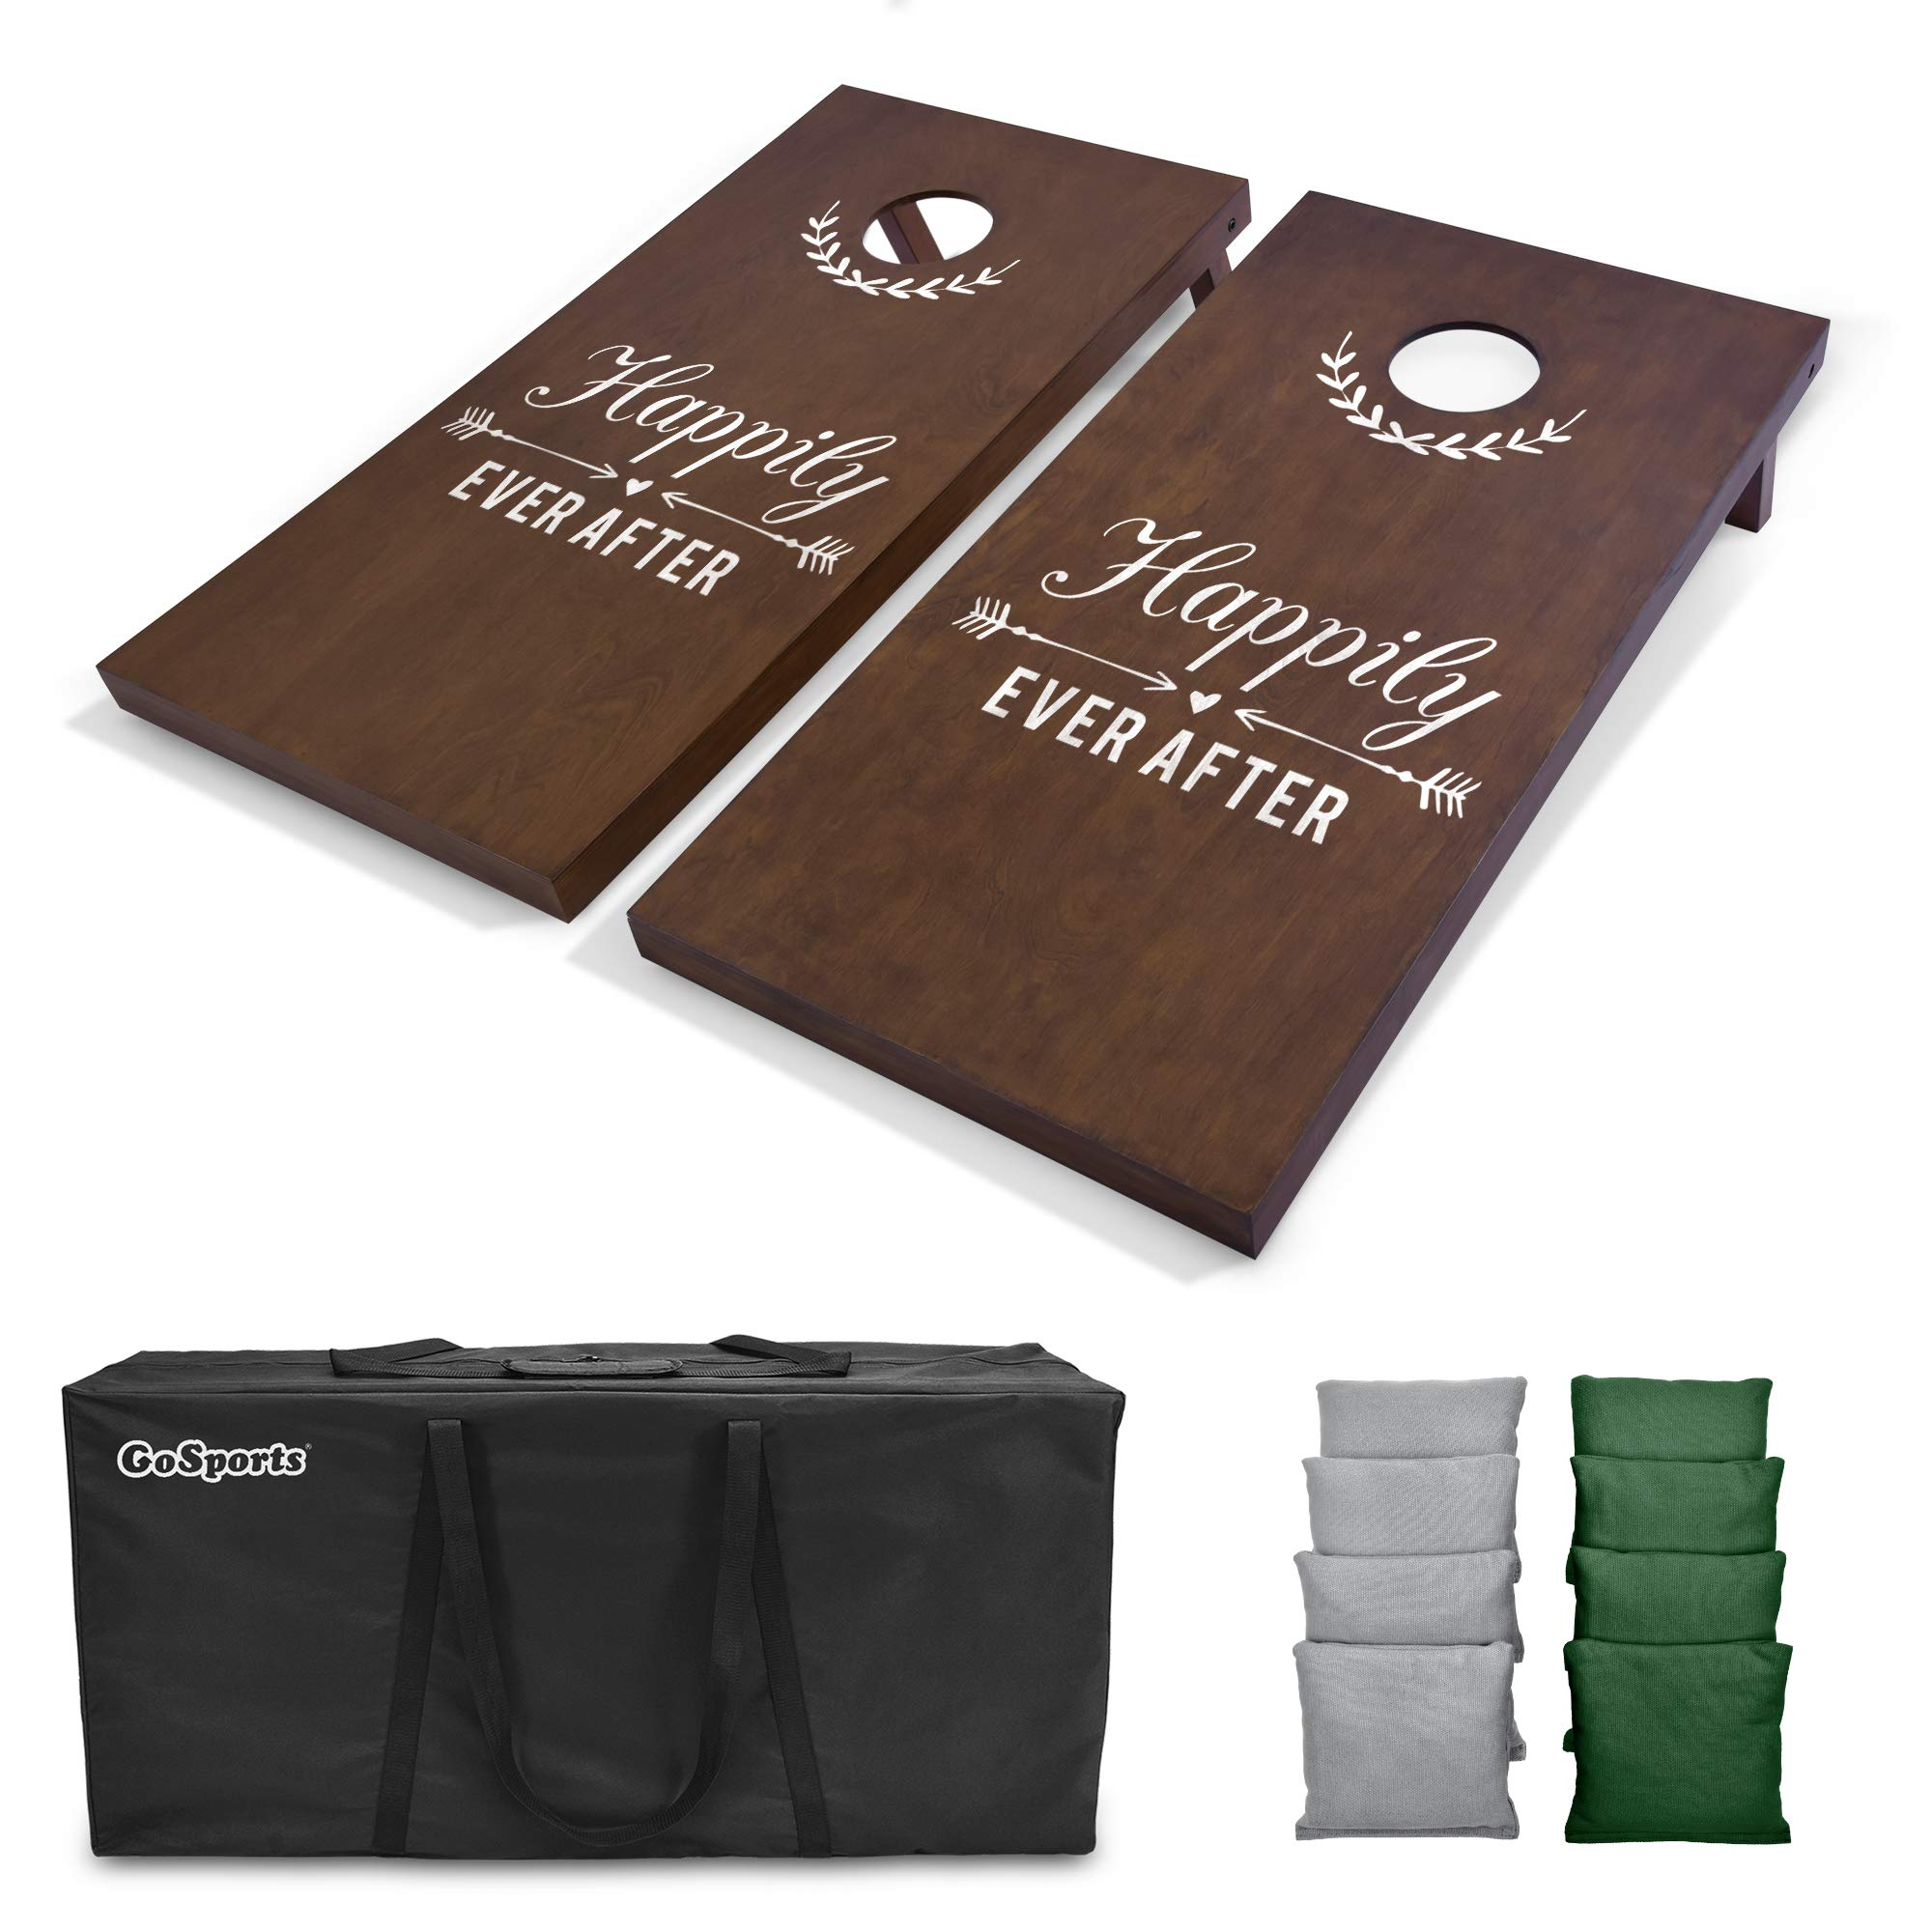 GoSports Wedding Cornhole Set   Regulation 4'x2' Size  Solid Stained Wood with Carrying Case and Bean Bags (Choose Your Colors) - Match The Wedding Theme!